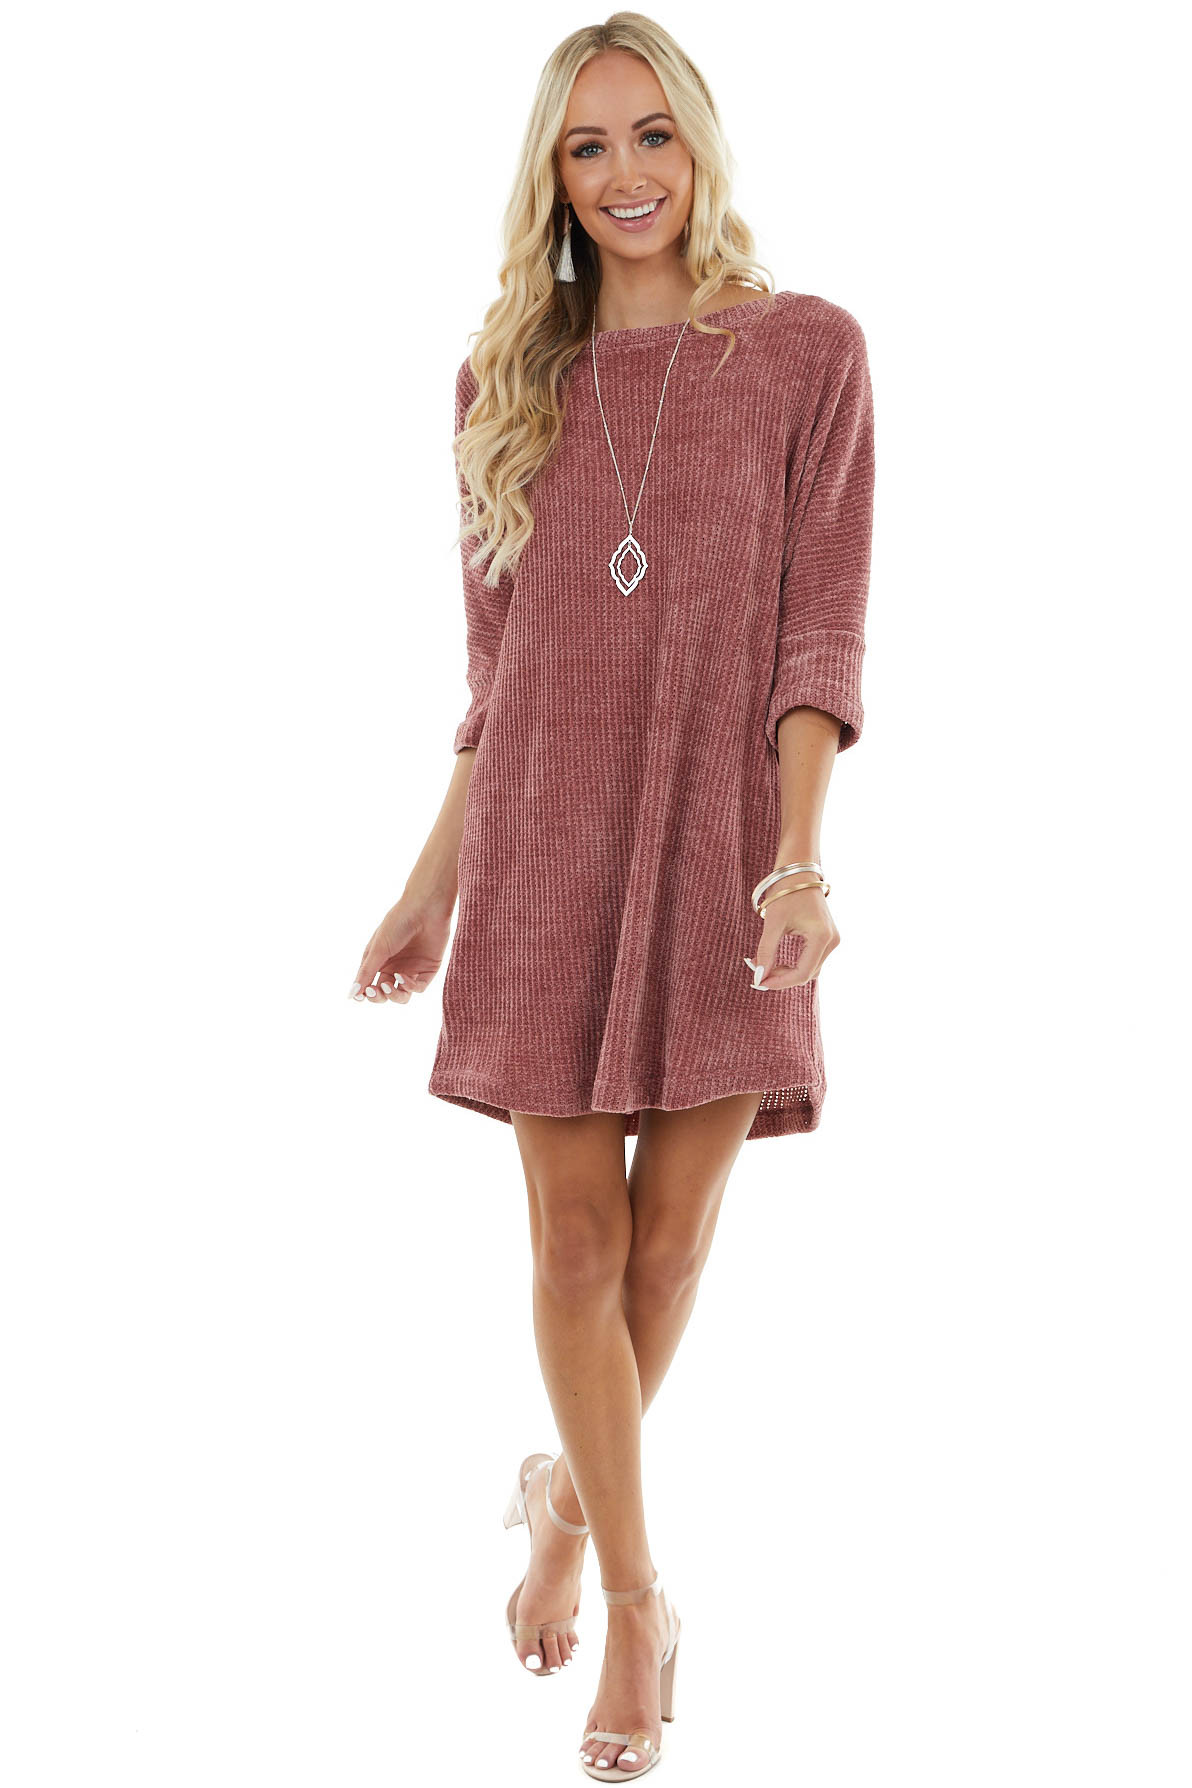 Marsala Chenille Knit Sweater Dress with 3/4 Dolman Sleeves